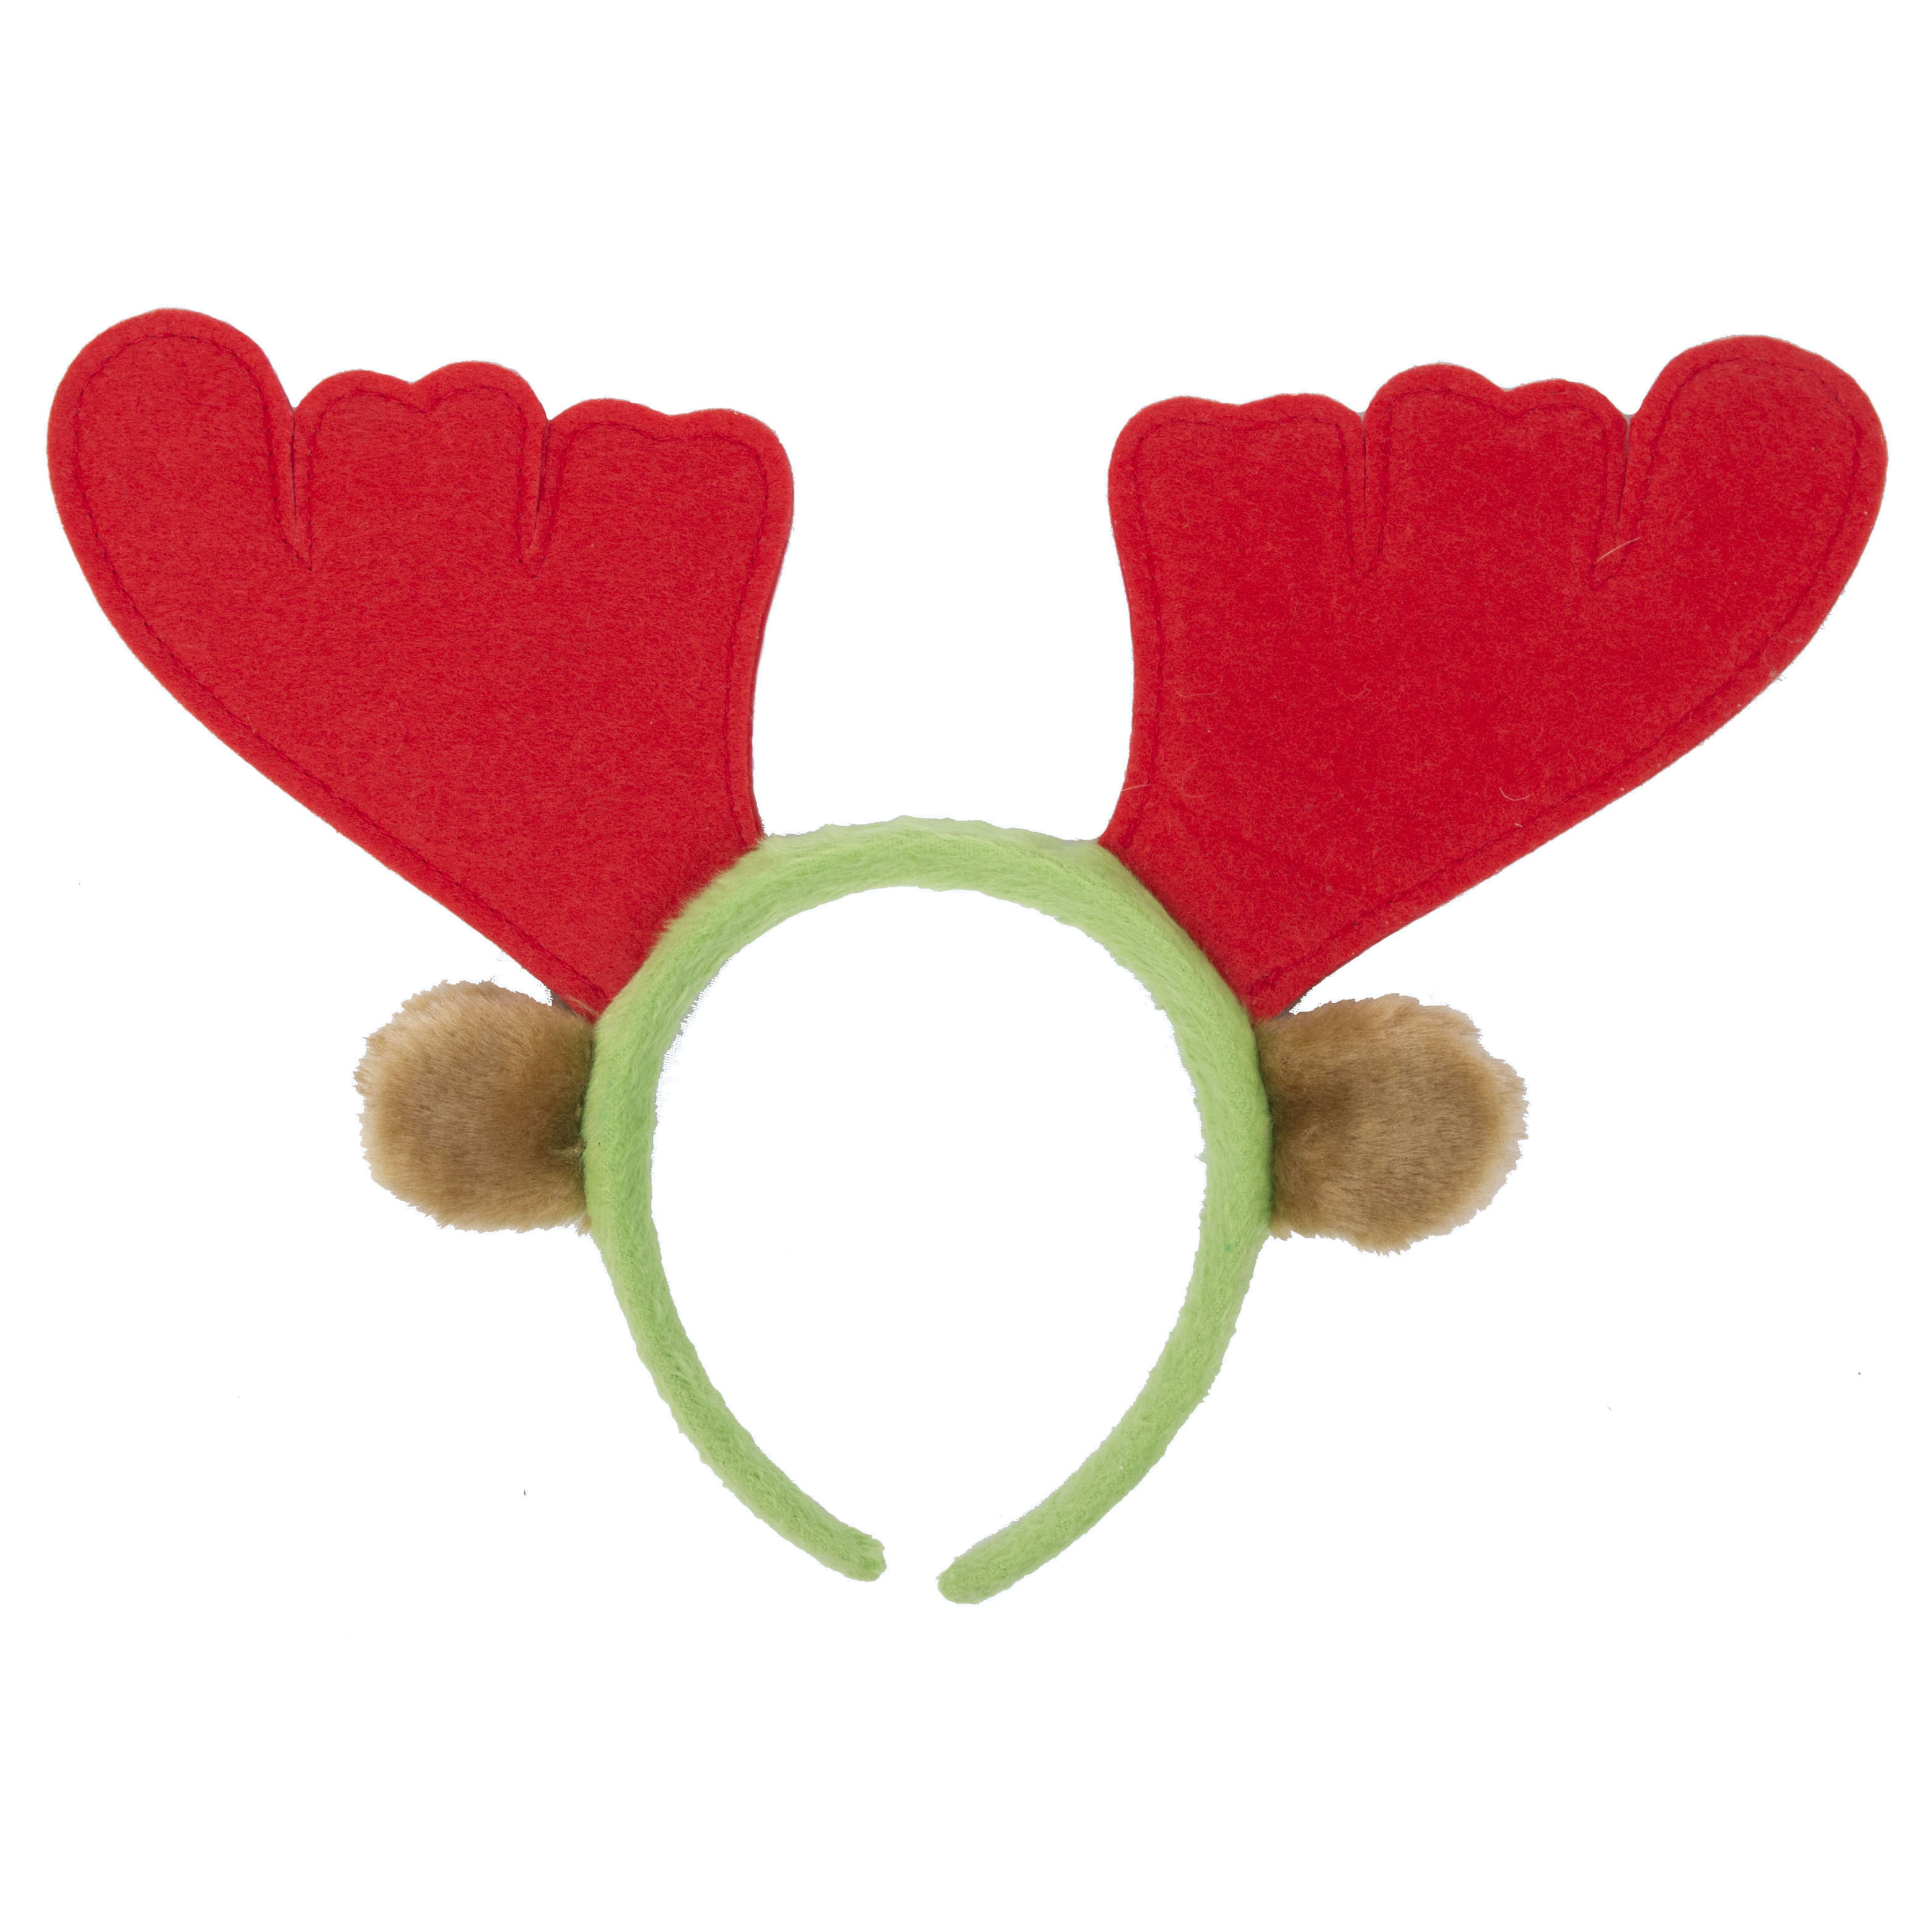 Pet Brands Reindeer Antlers for Dogs